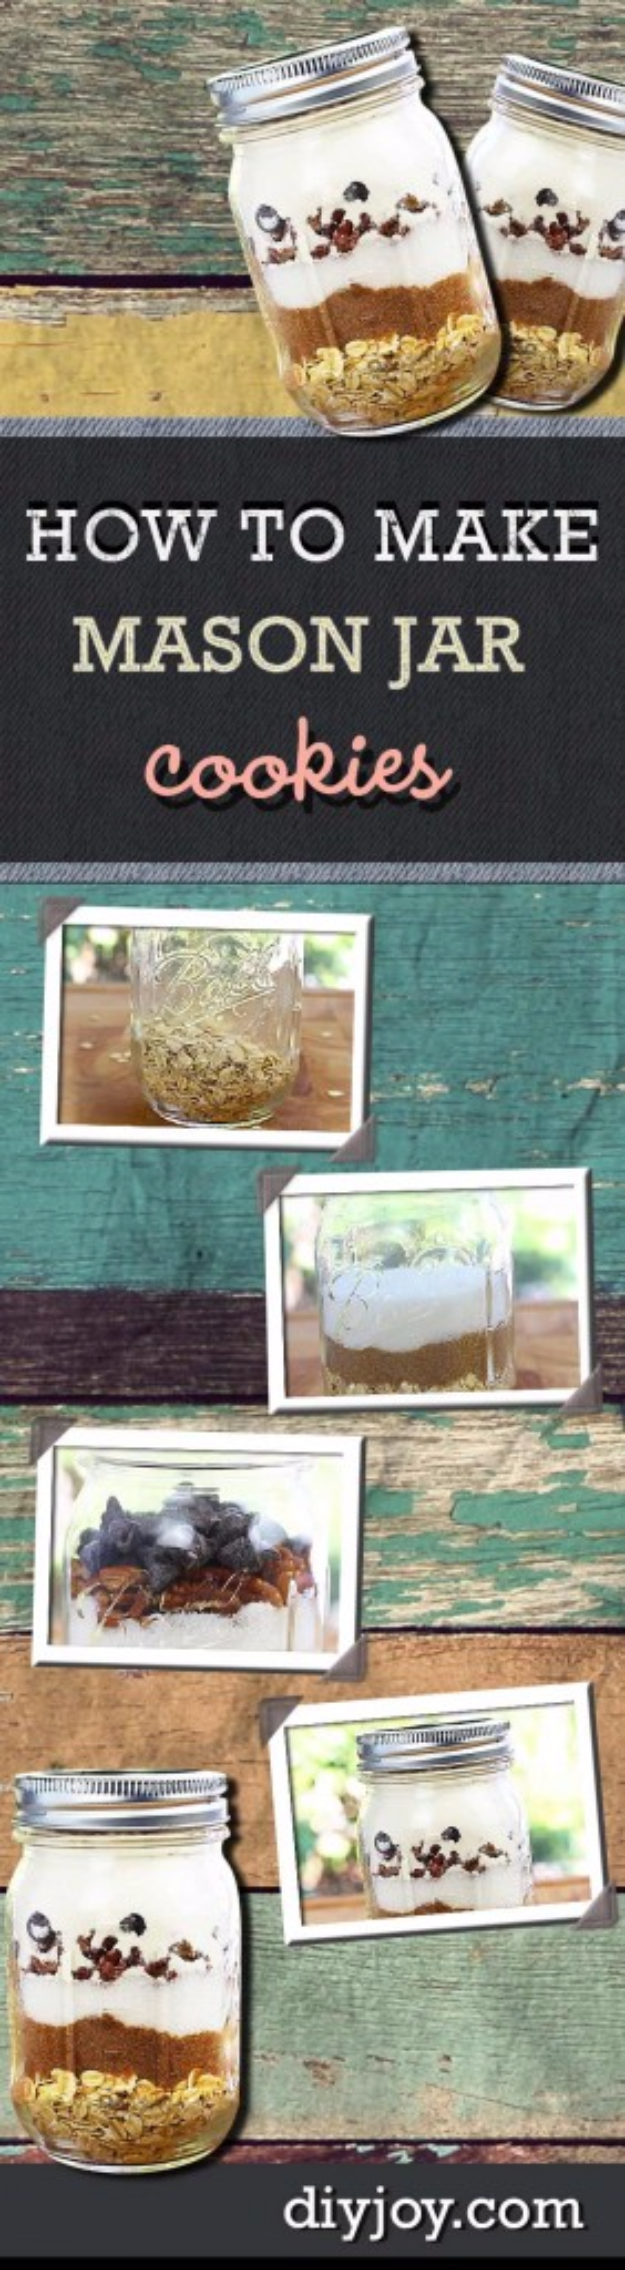 Best Mason Jar Cookies - Mason Jar Cookies - Mason Jar Cookie Recipe Mix for Cute Decorated DIY Gifts - Easy Chocolate Chip Recipes, Christmas Presents and Wedding Favors in Mason Jars - Fun Ideas for DIY Parties and Cheap Last Minute Gift Ideas for Friends #diygifts #masonjarcrafts